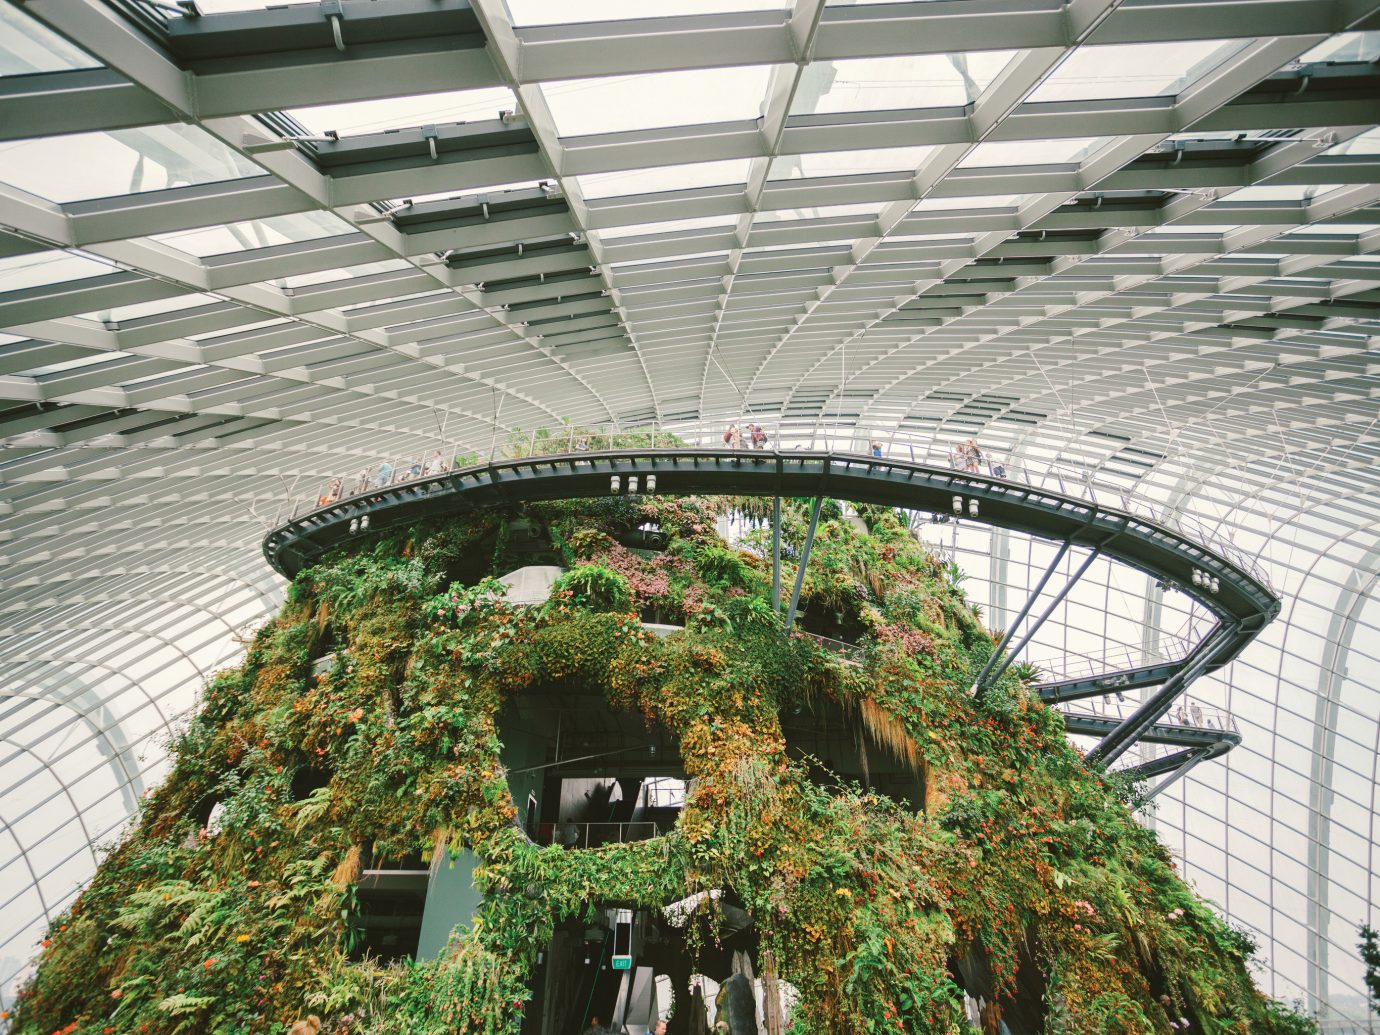 Offbeat Singapore Trip Ideas structure building outdoor sport venue Architecture stadium arena skyway greenhouse court